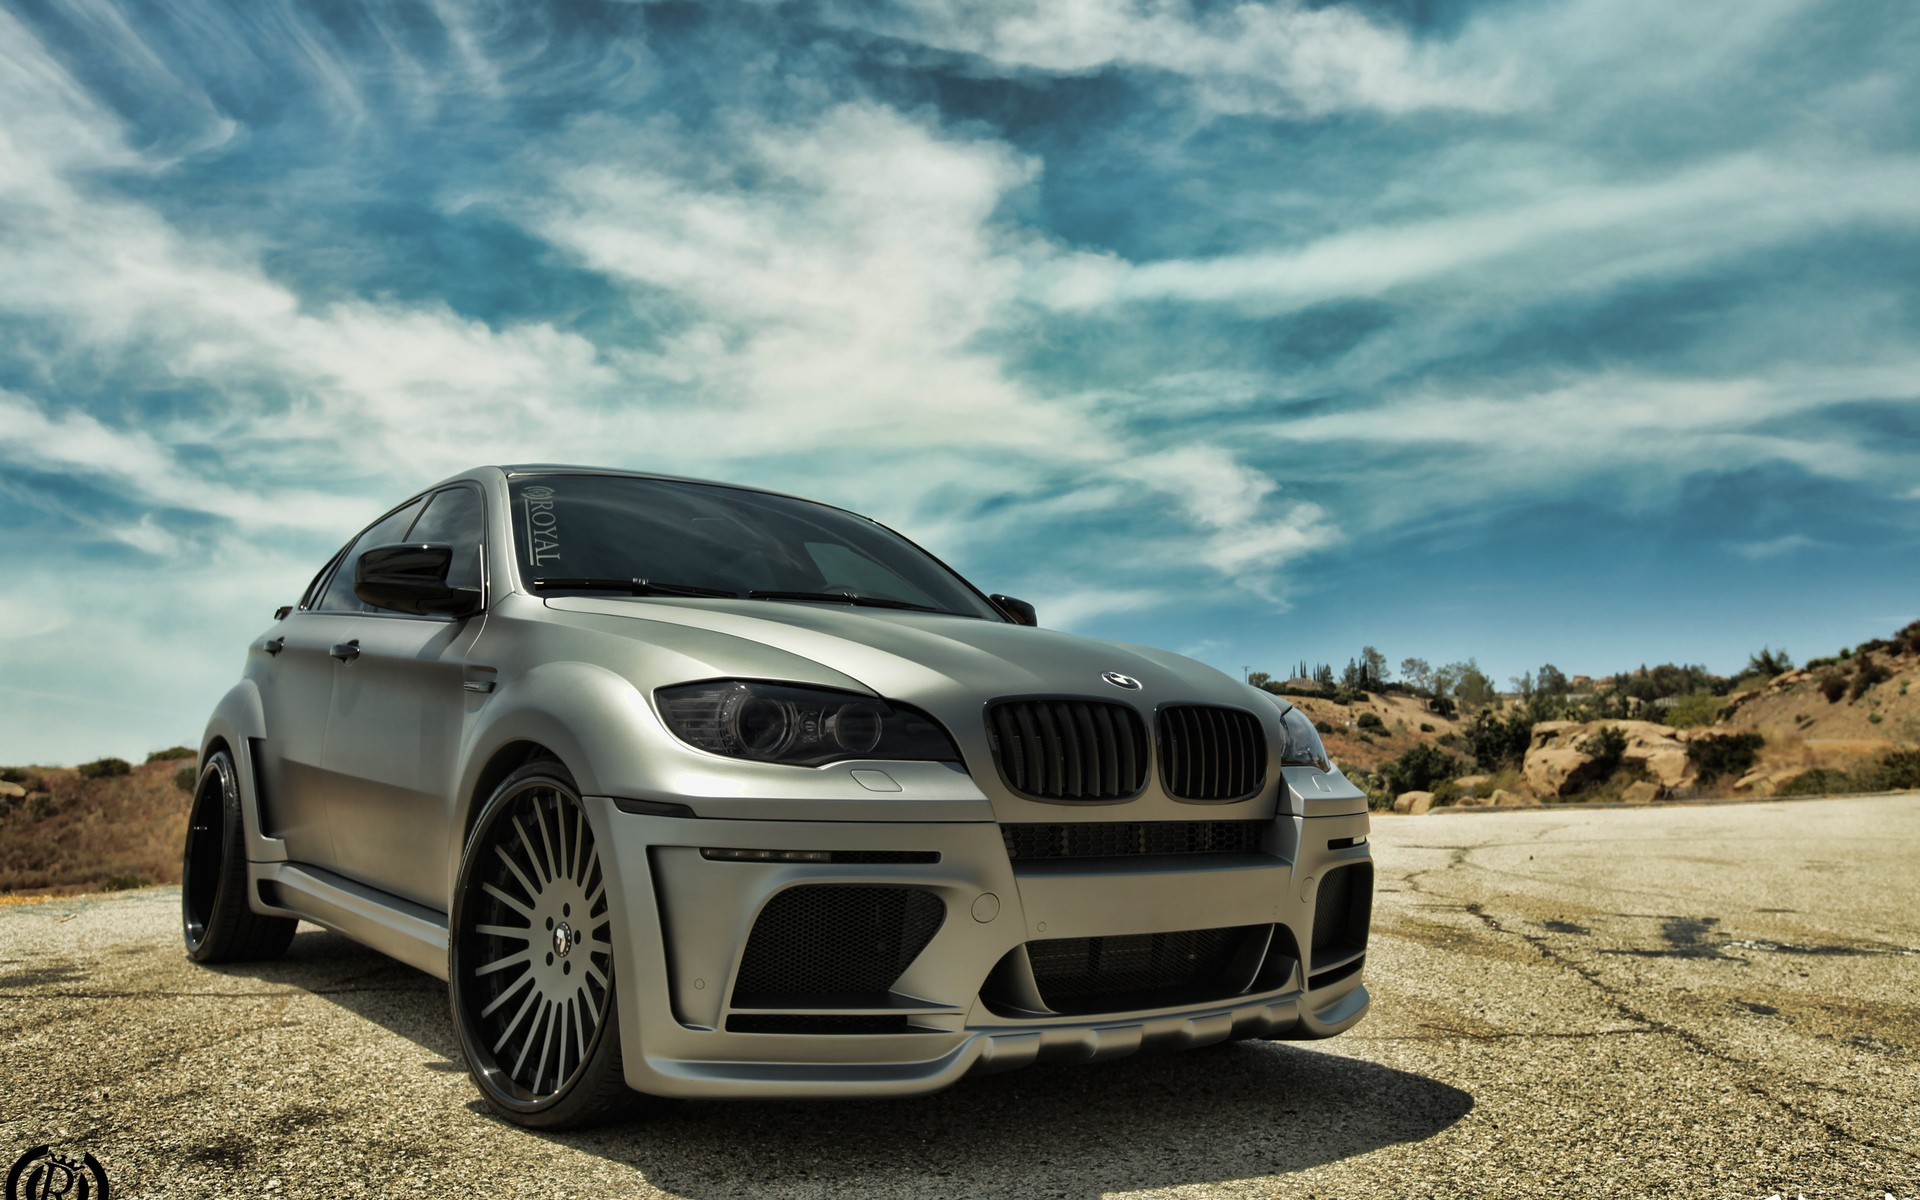 Bmw X6 Cool Car   Hd Desktop Wallpapers | 4k Hd